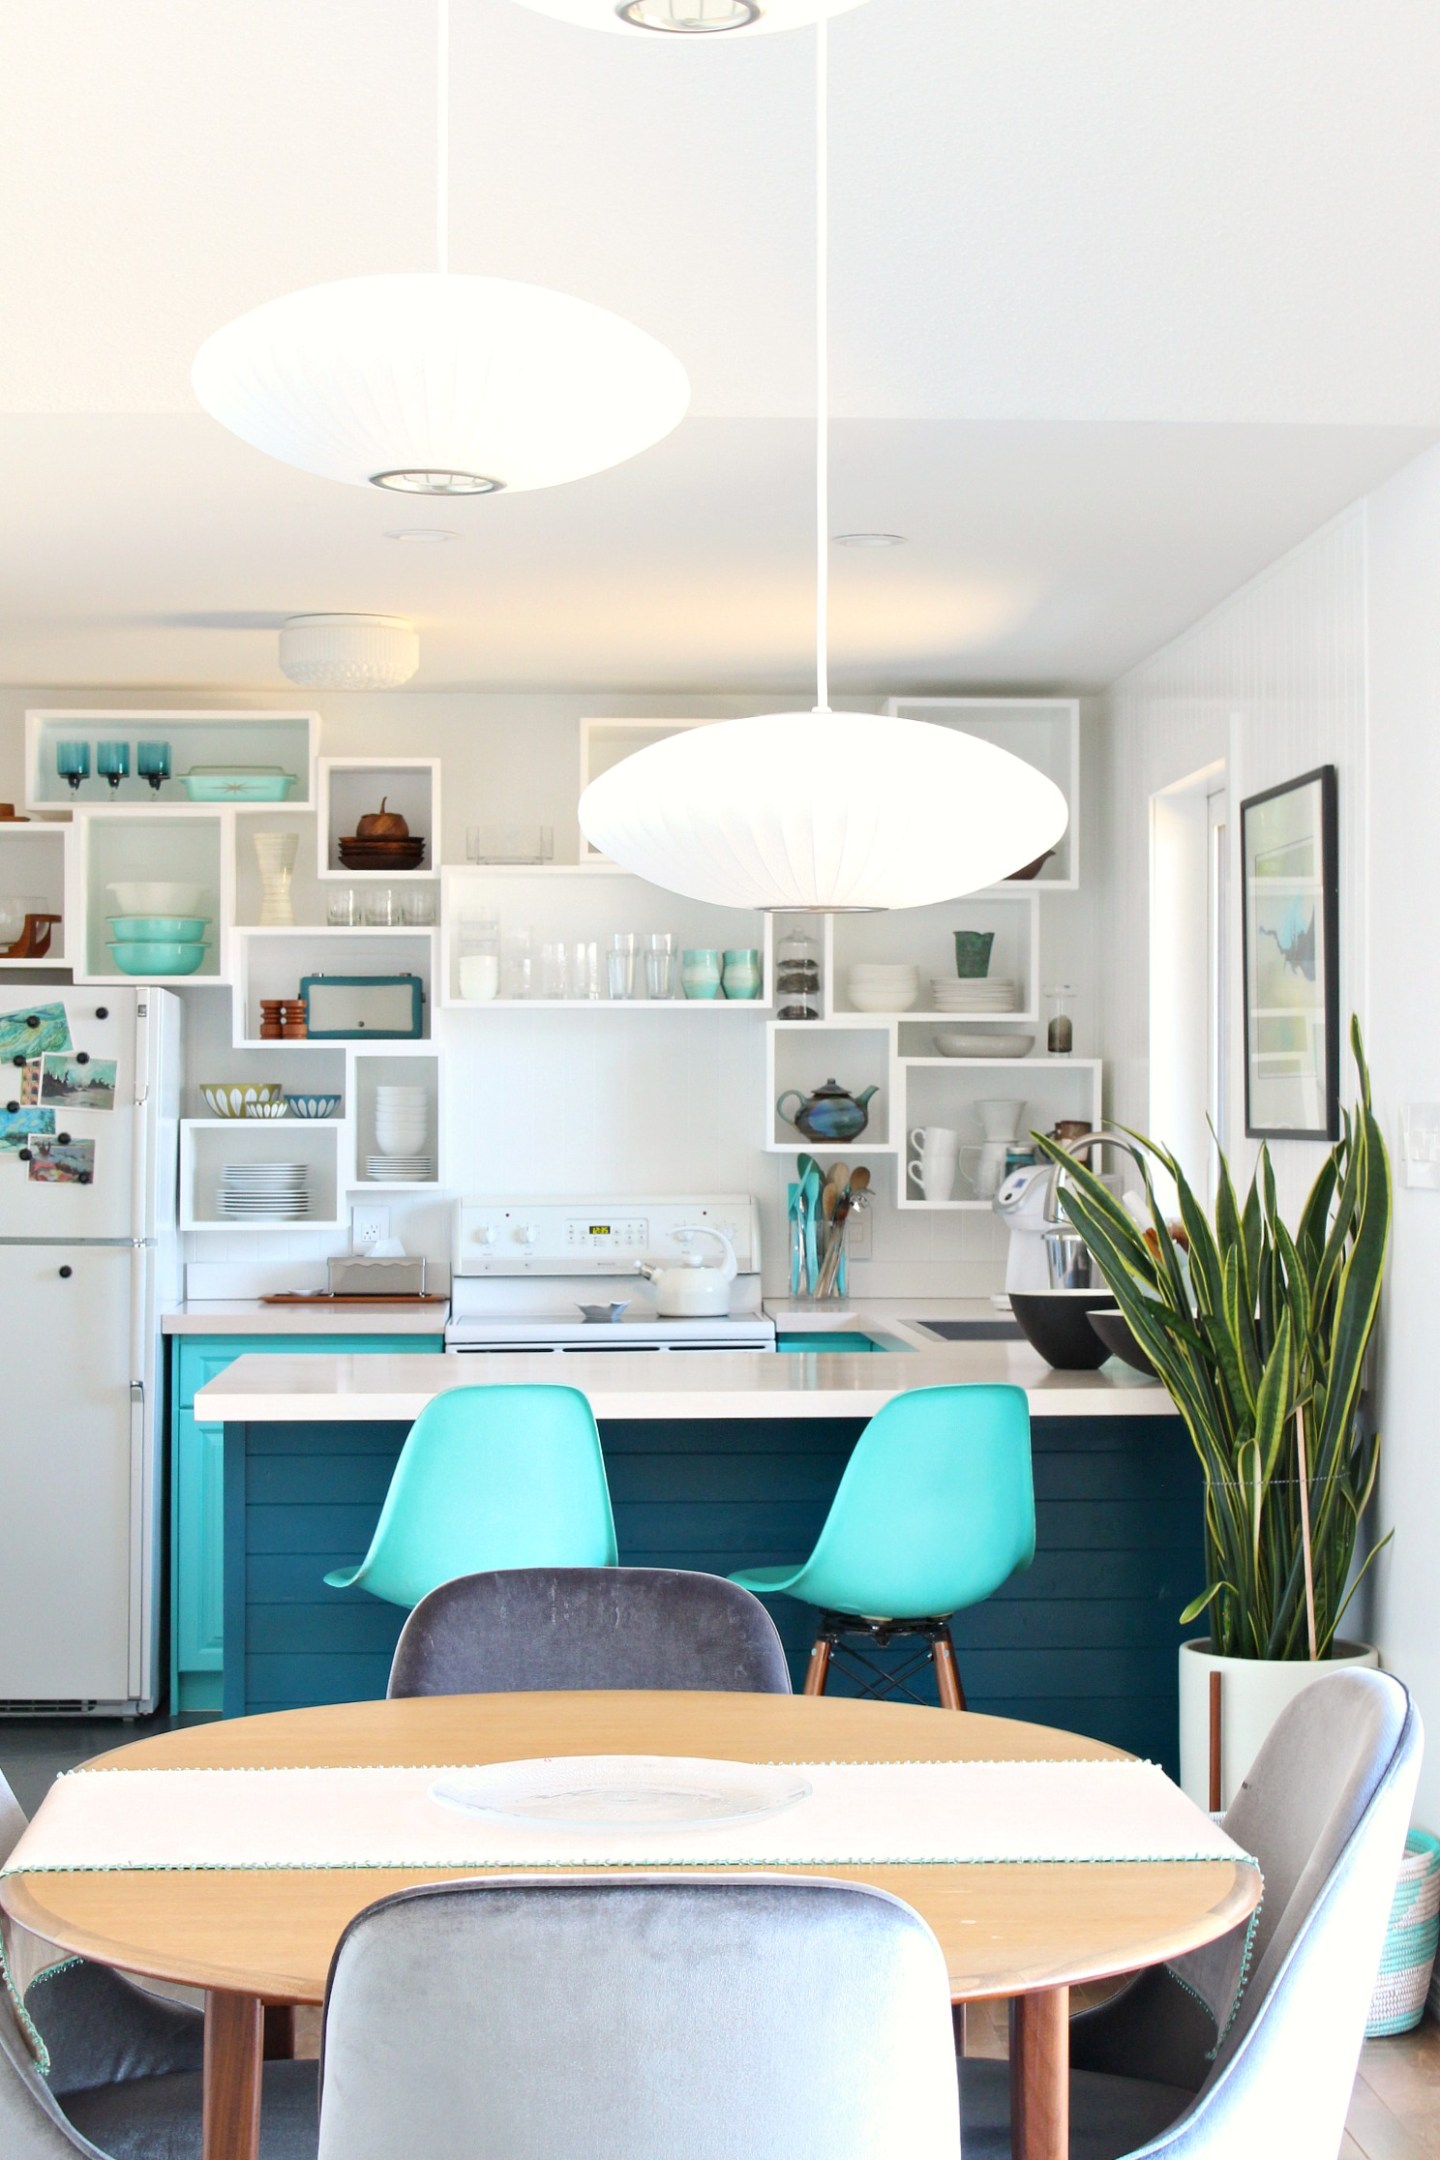 Lake House Kitchen with DIY Wall Cubbies Instead of Open Shelving - a Modern Take on Open Shelving in Kitchens. #openshelving #teal #colorfulhomedecor